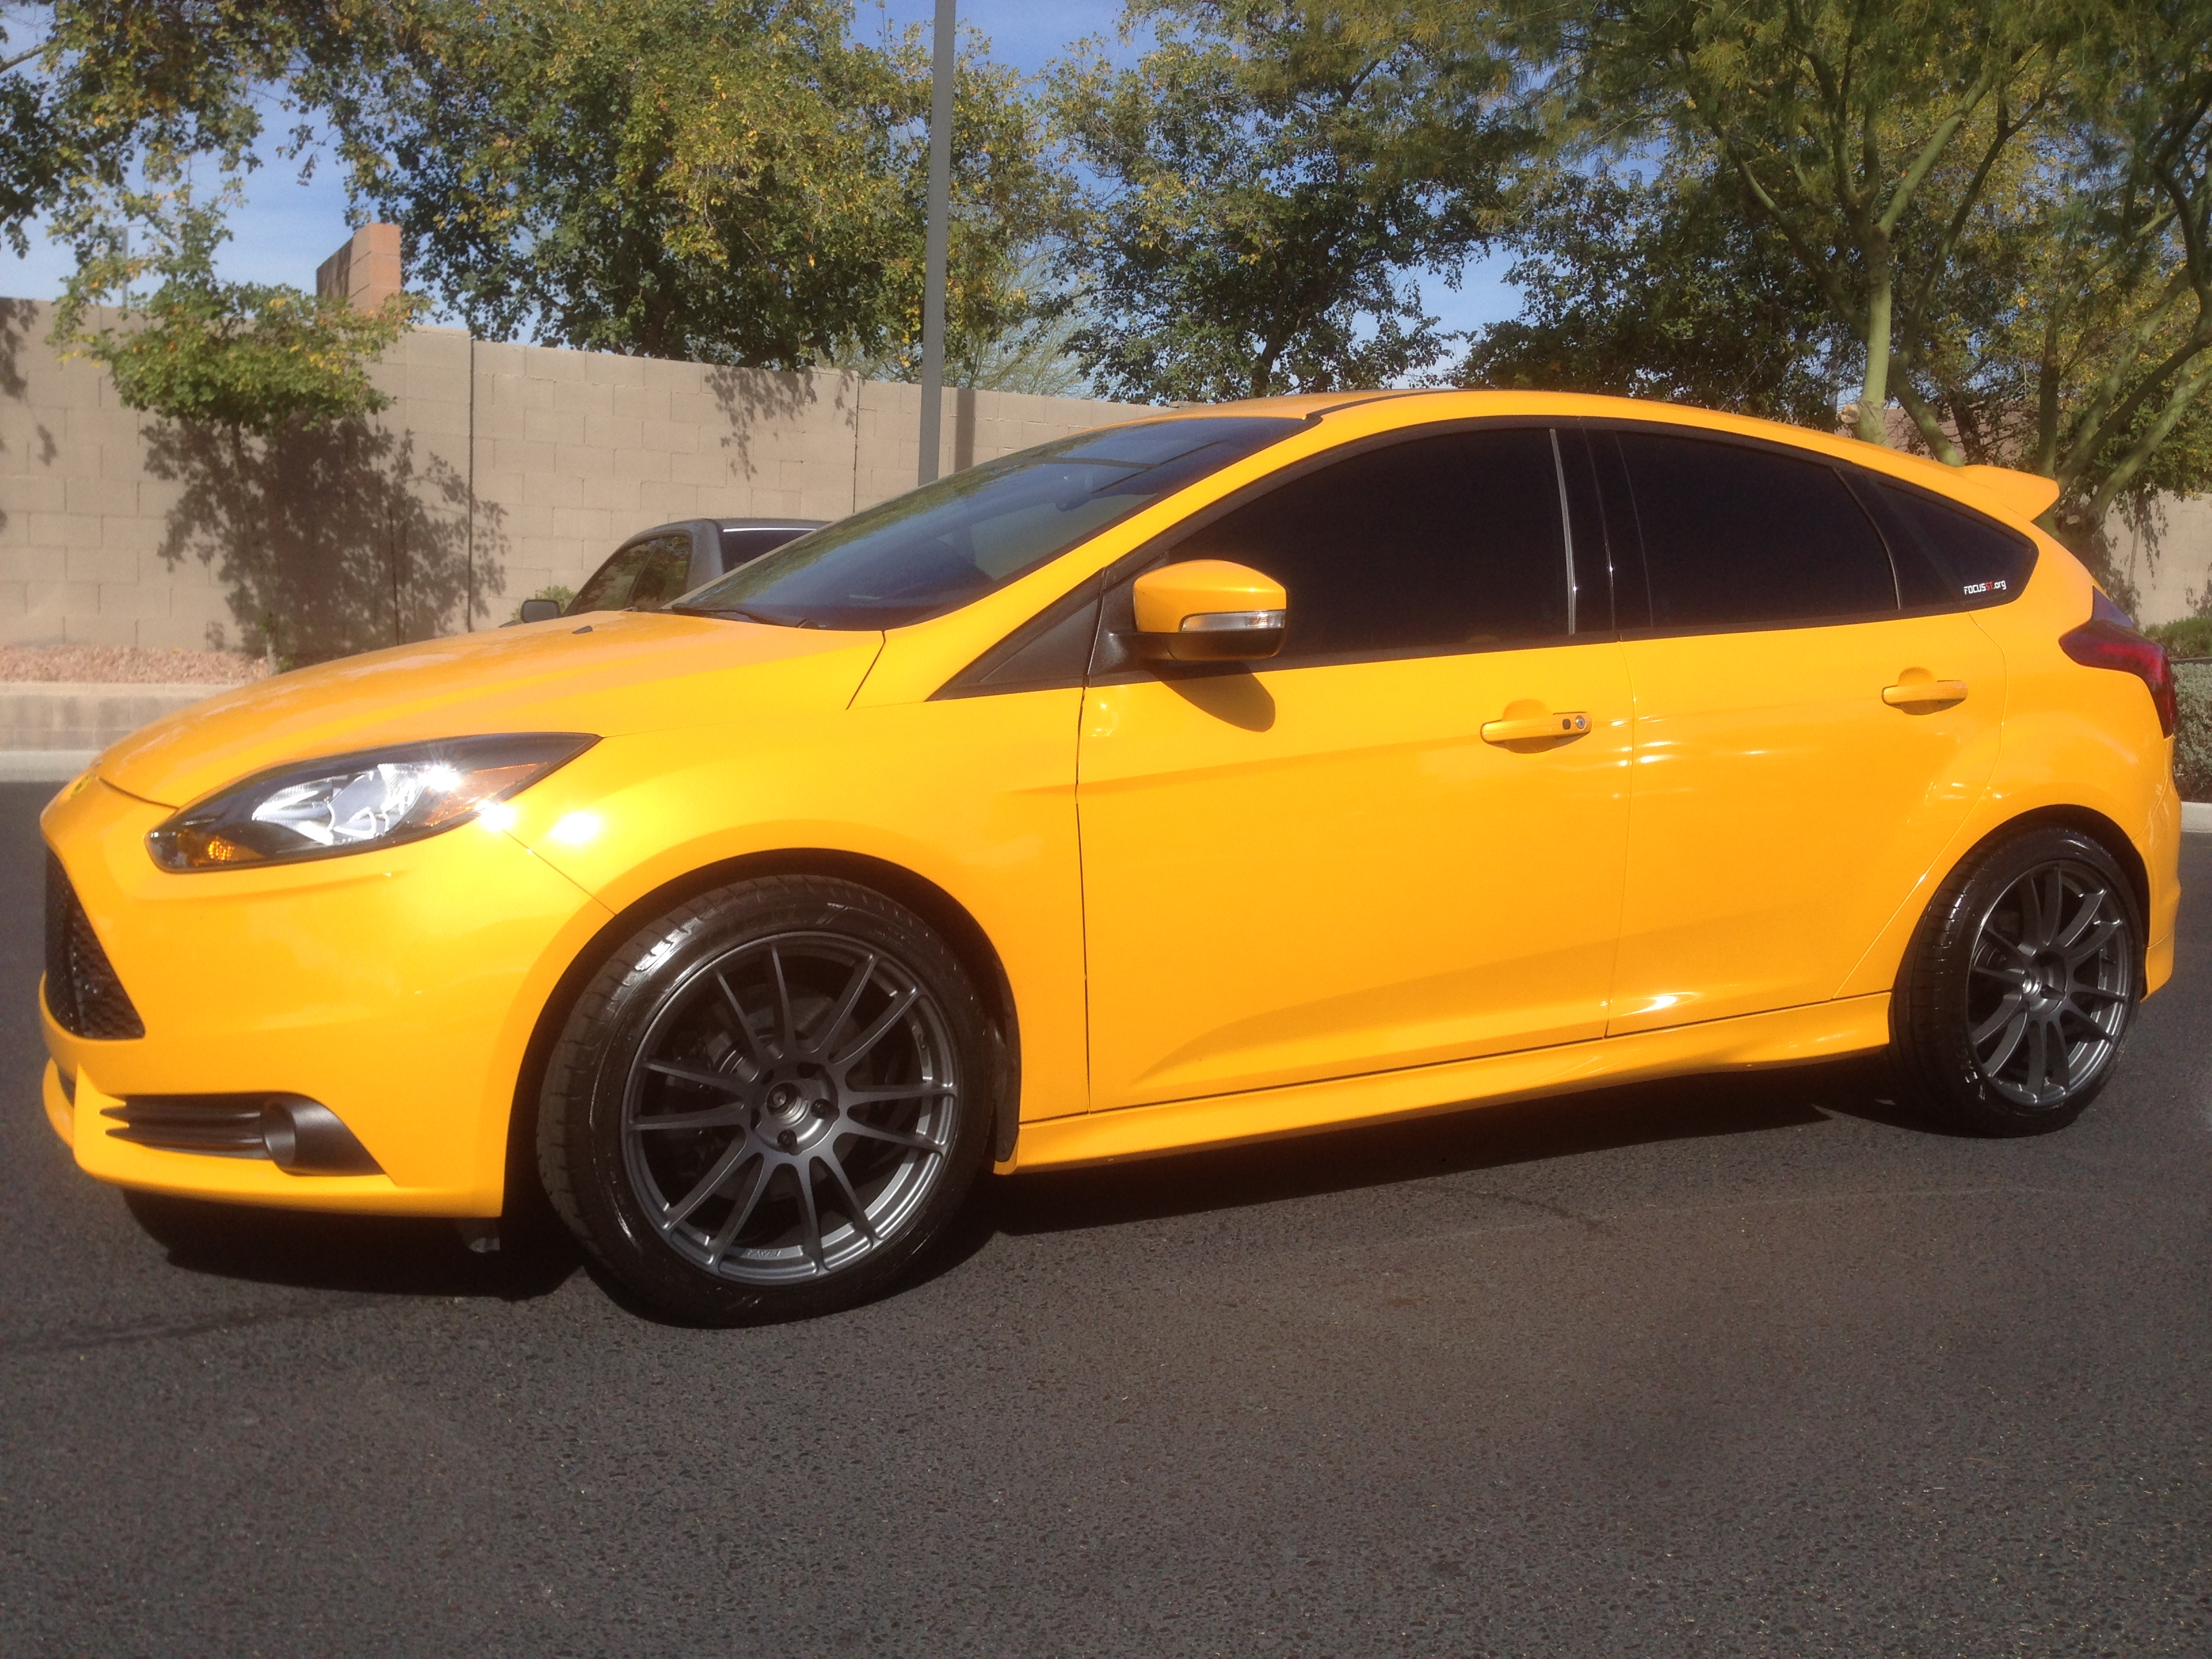 Focus St Colors >> Hot or Not | The Wheel Thread - Page 17